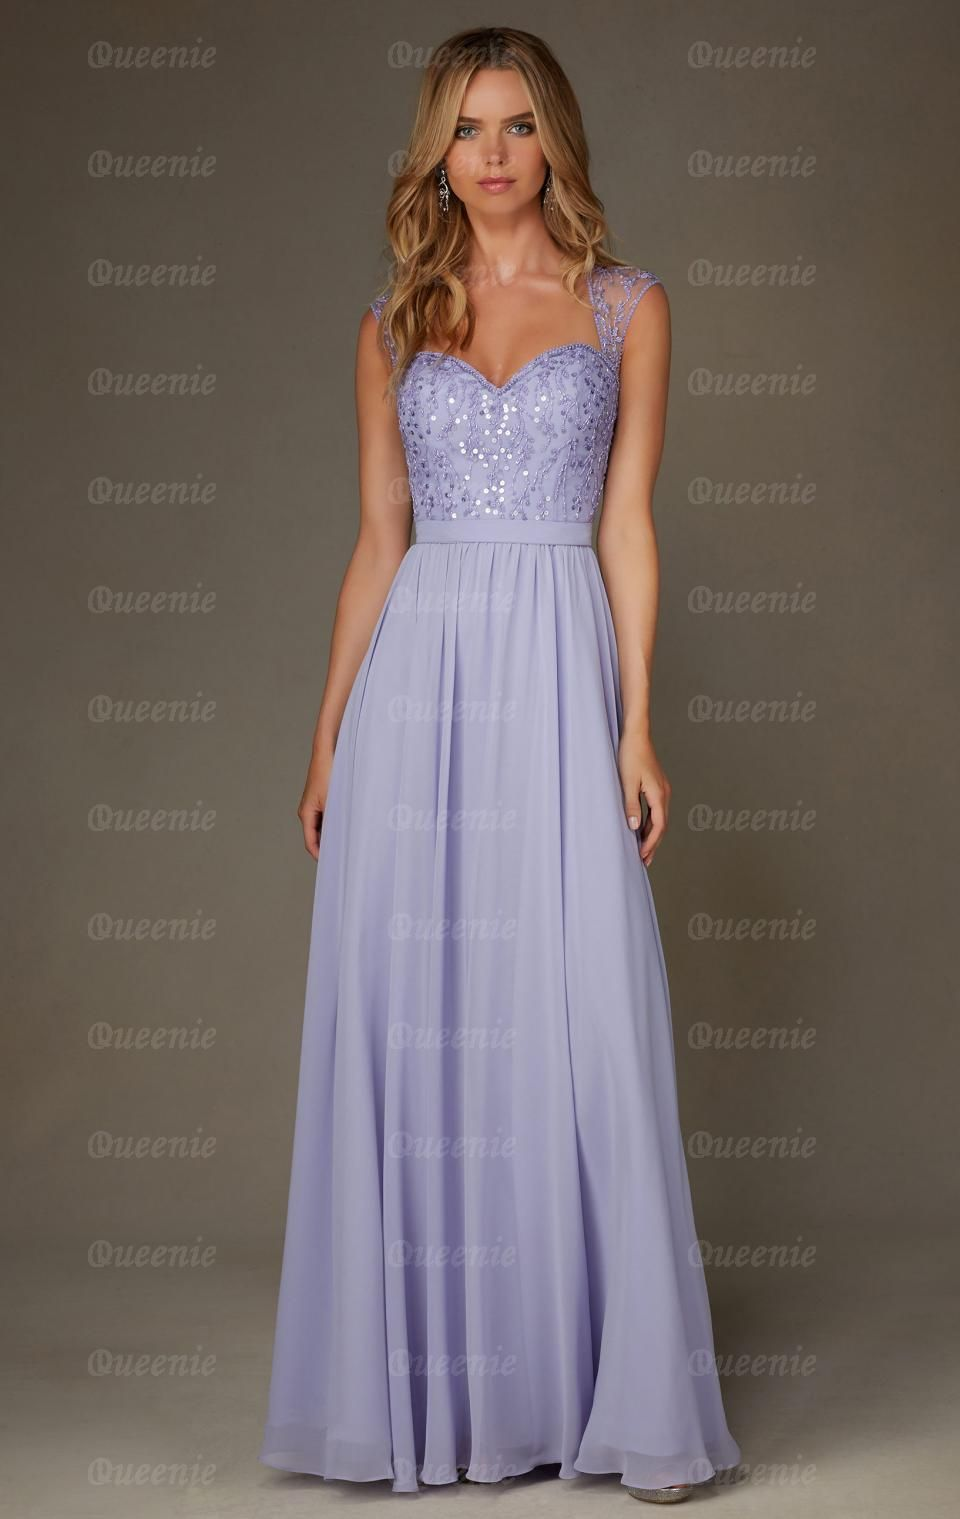 online lilac bridesmaid dress bnncl0015bridesmaid uk